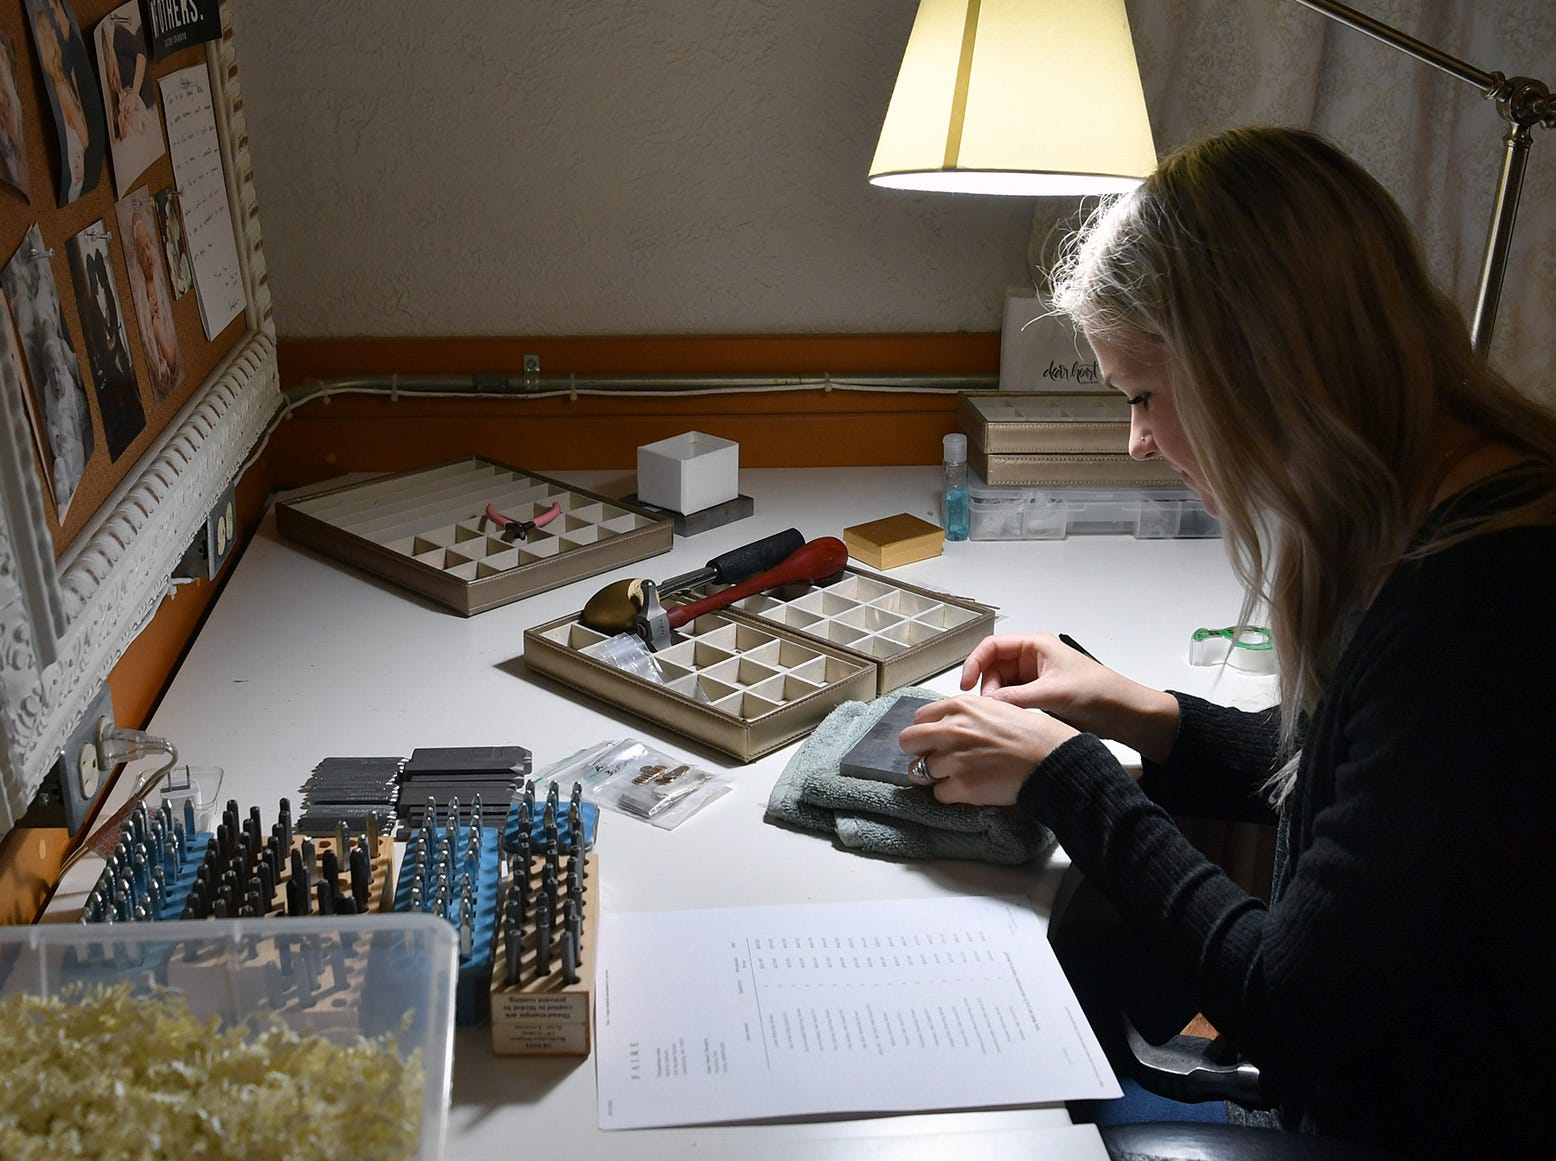 Nichole Kirk makes custom jewelry in her design studio at Dear Heart in Henrietta. Kirk started her business out of her home in 2013.